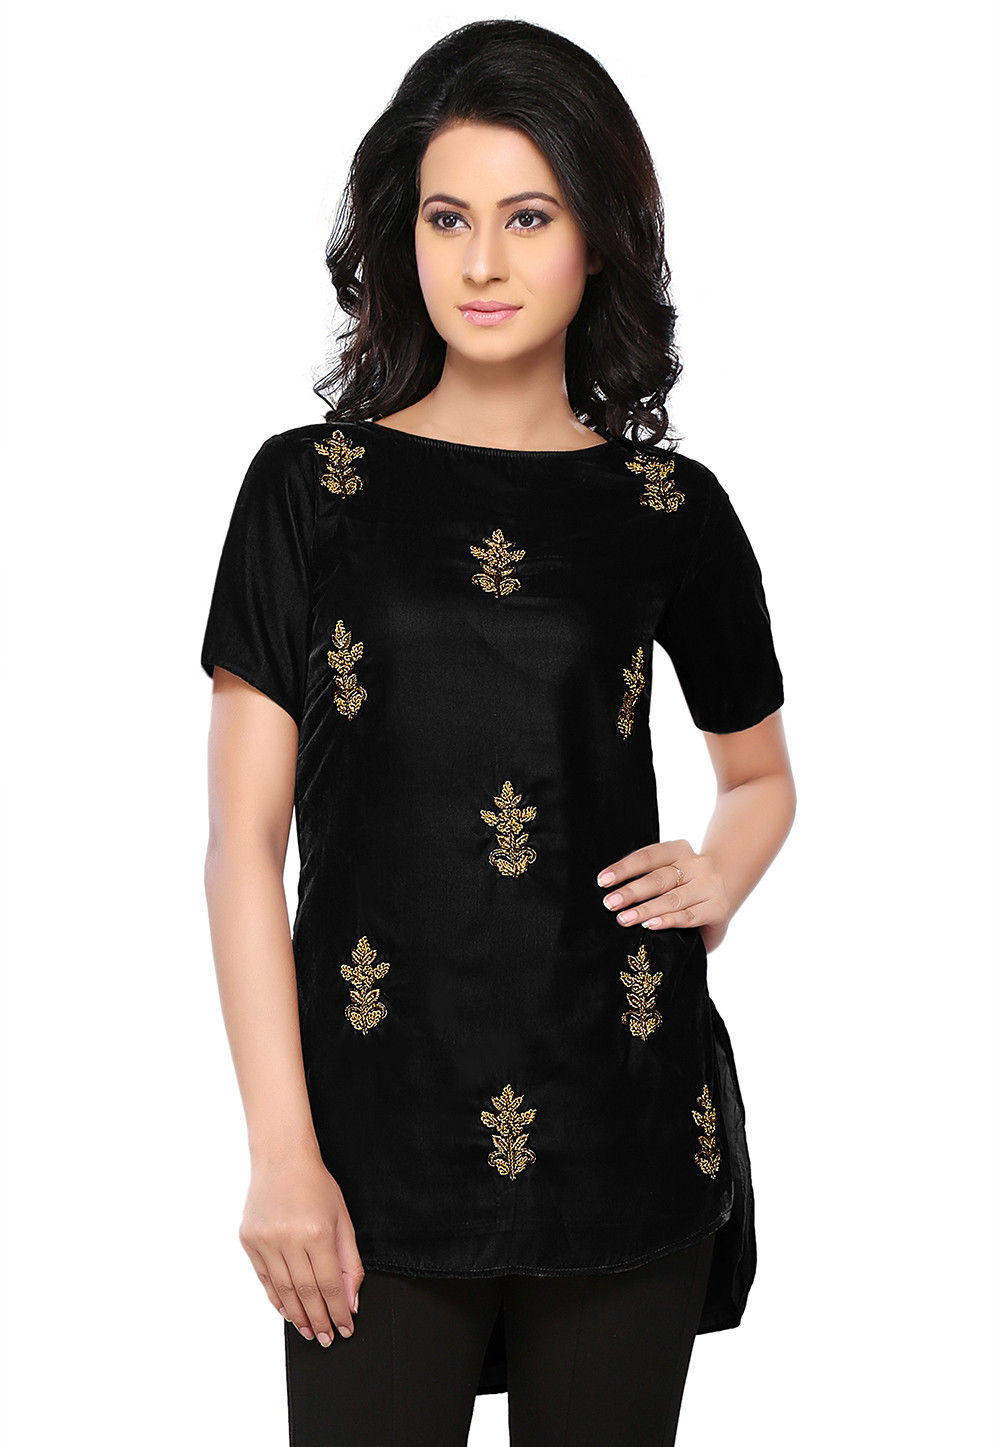 Bullion Velvet Tunic in Black